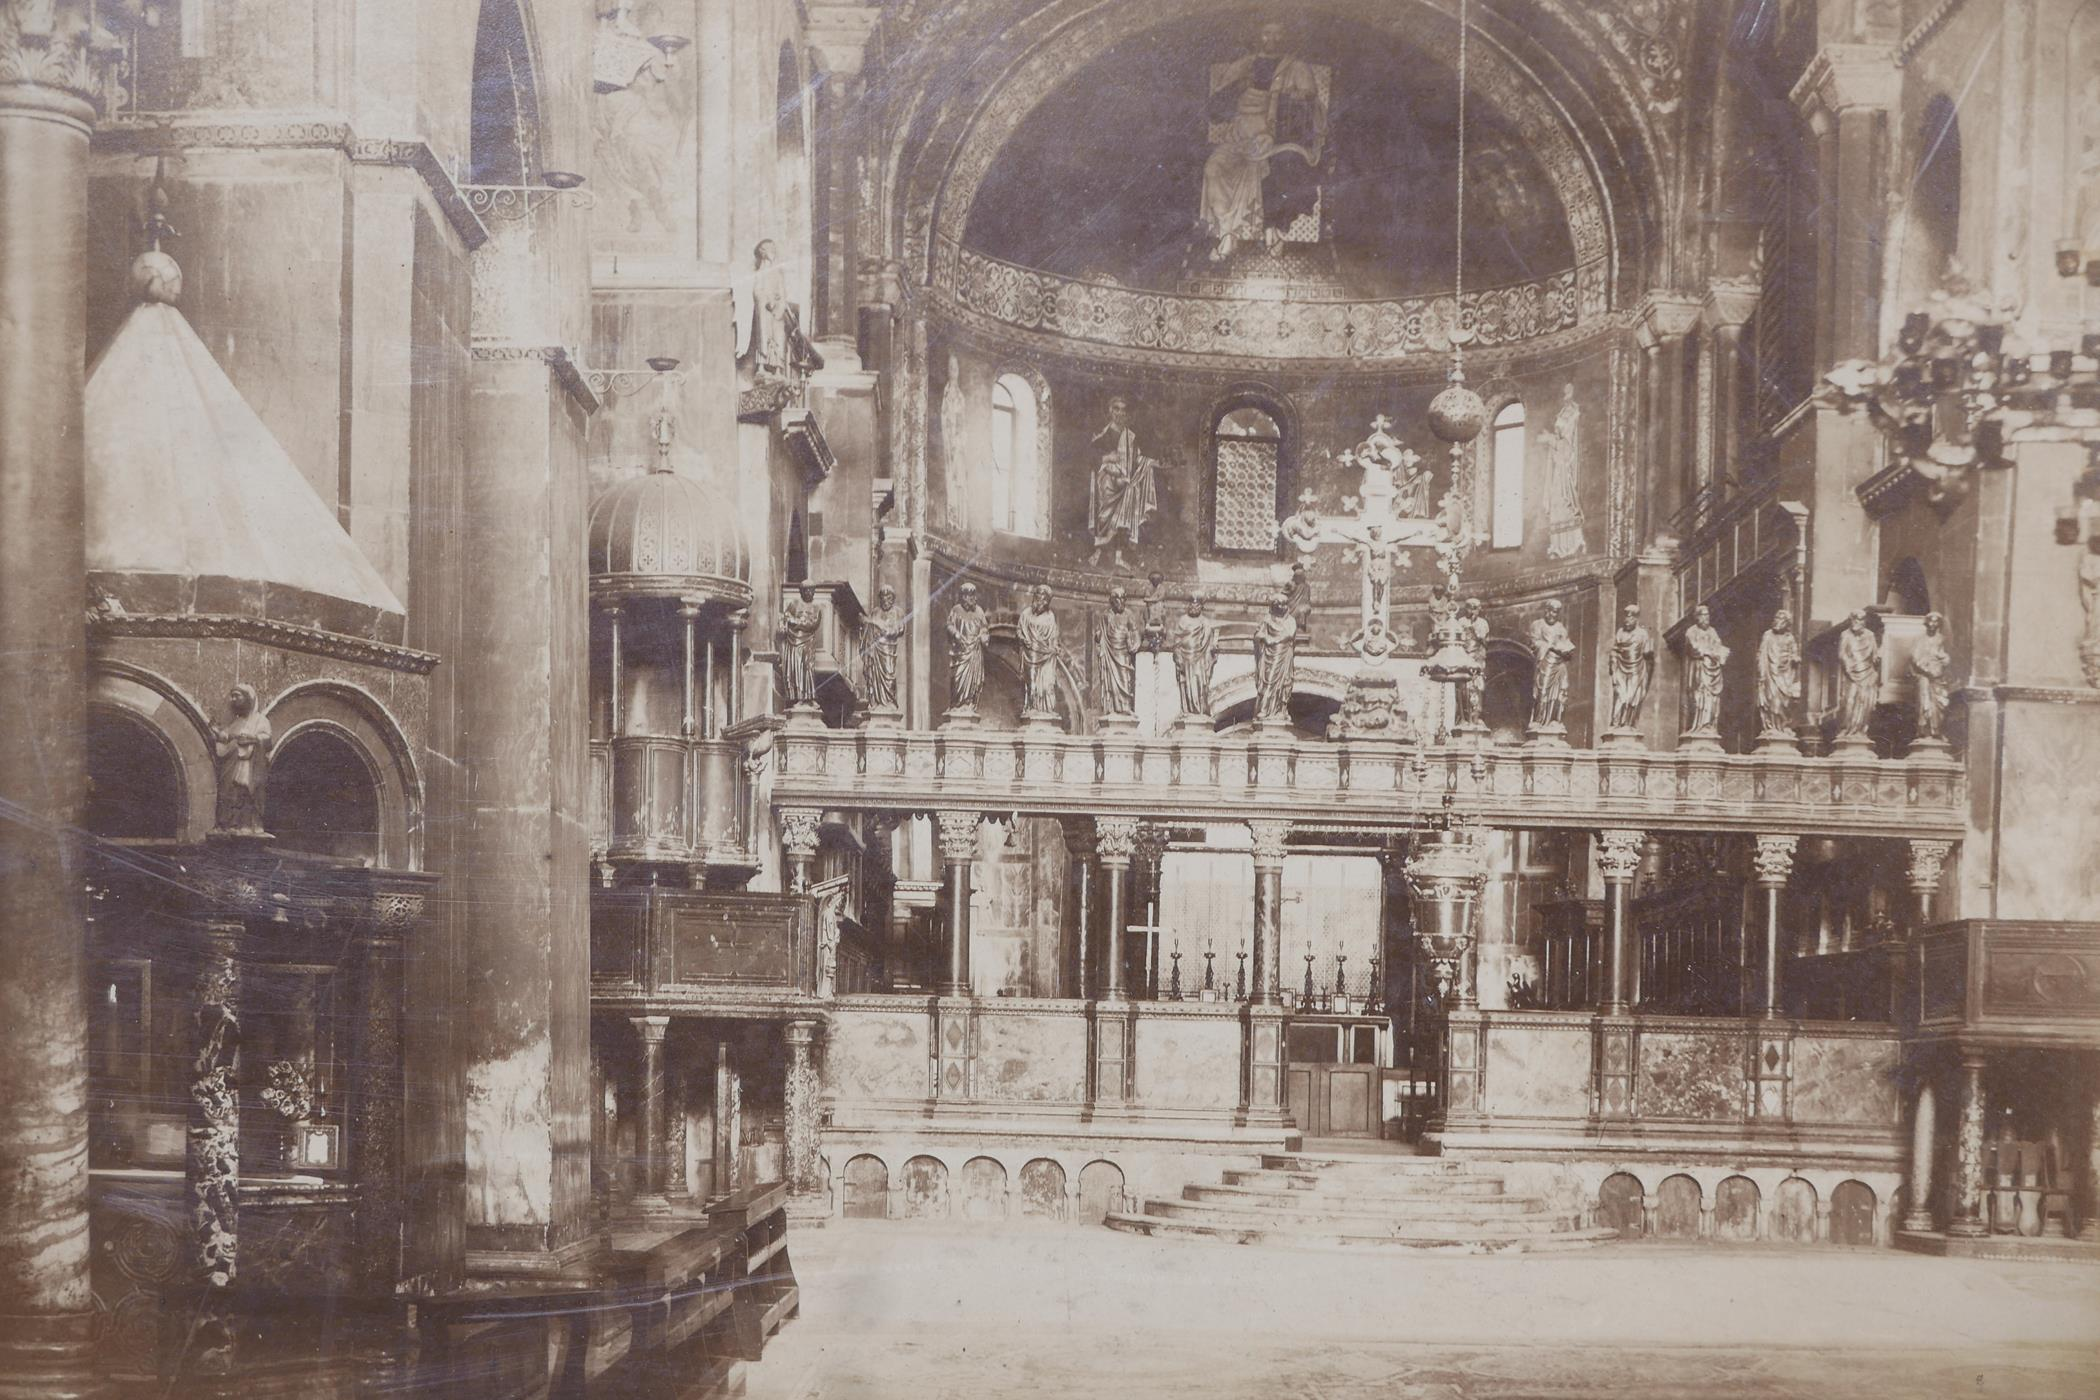 Three original sepia photographs of C19th Venice, Piazza di San Marco, the Basilica and the Arsenal, - Image 4 of 5